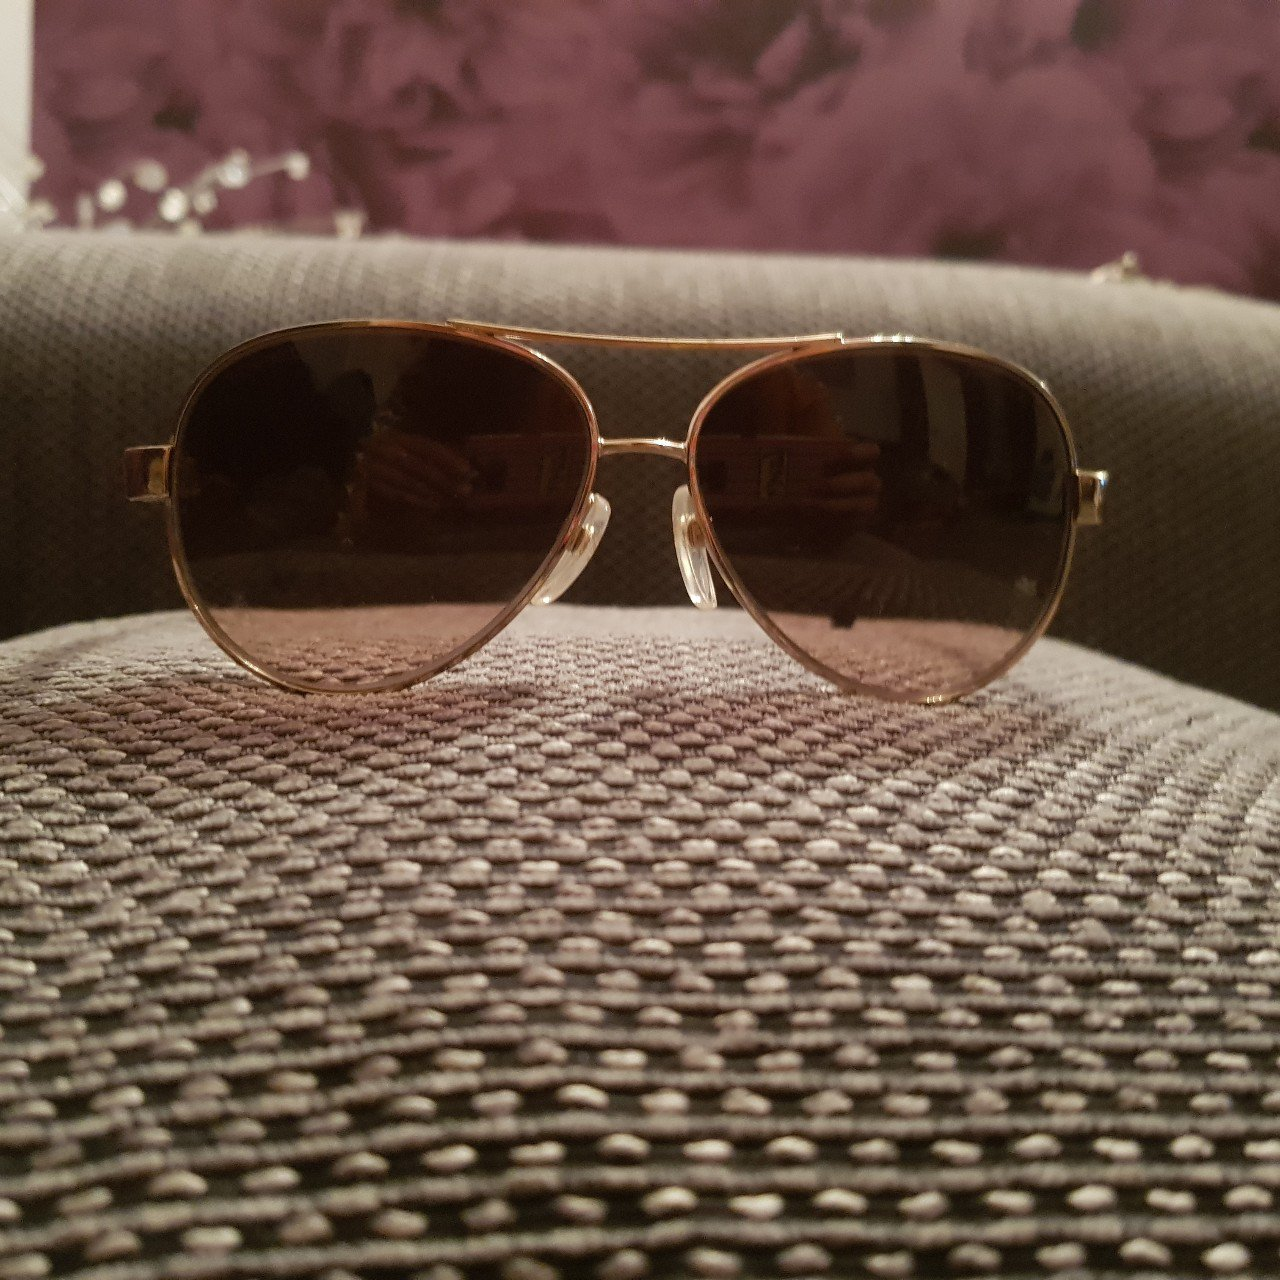 da255d8fb52c Chanel aviator sunglasses. Paid £319 from house of fraser in - Depop